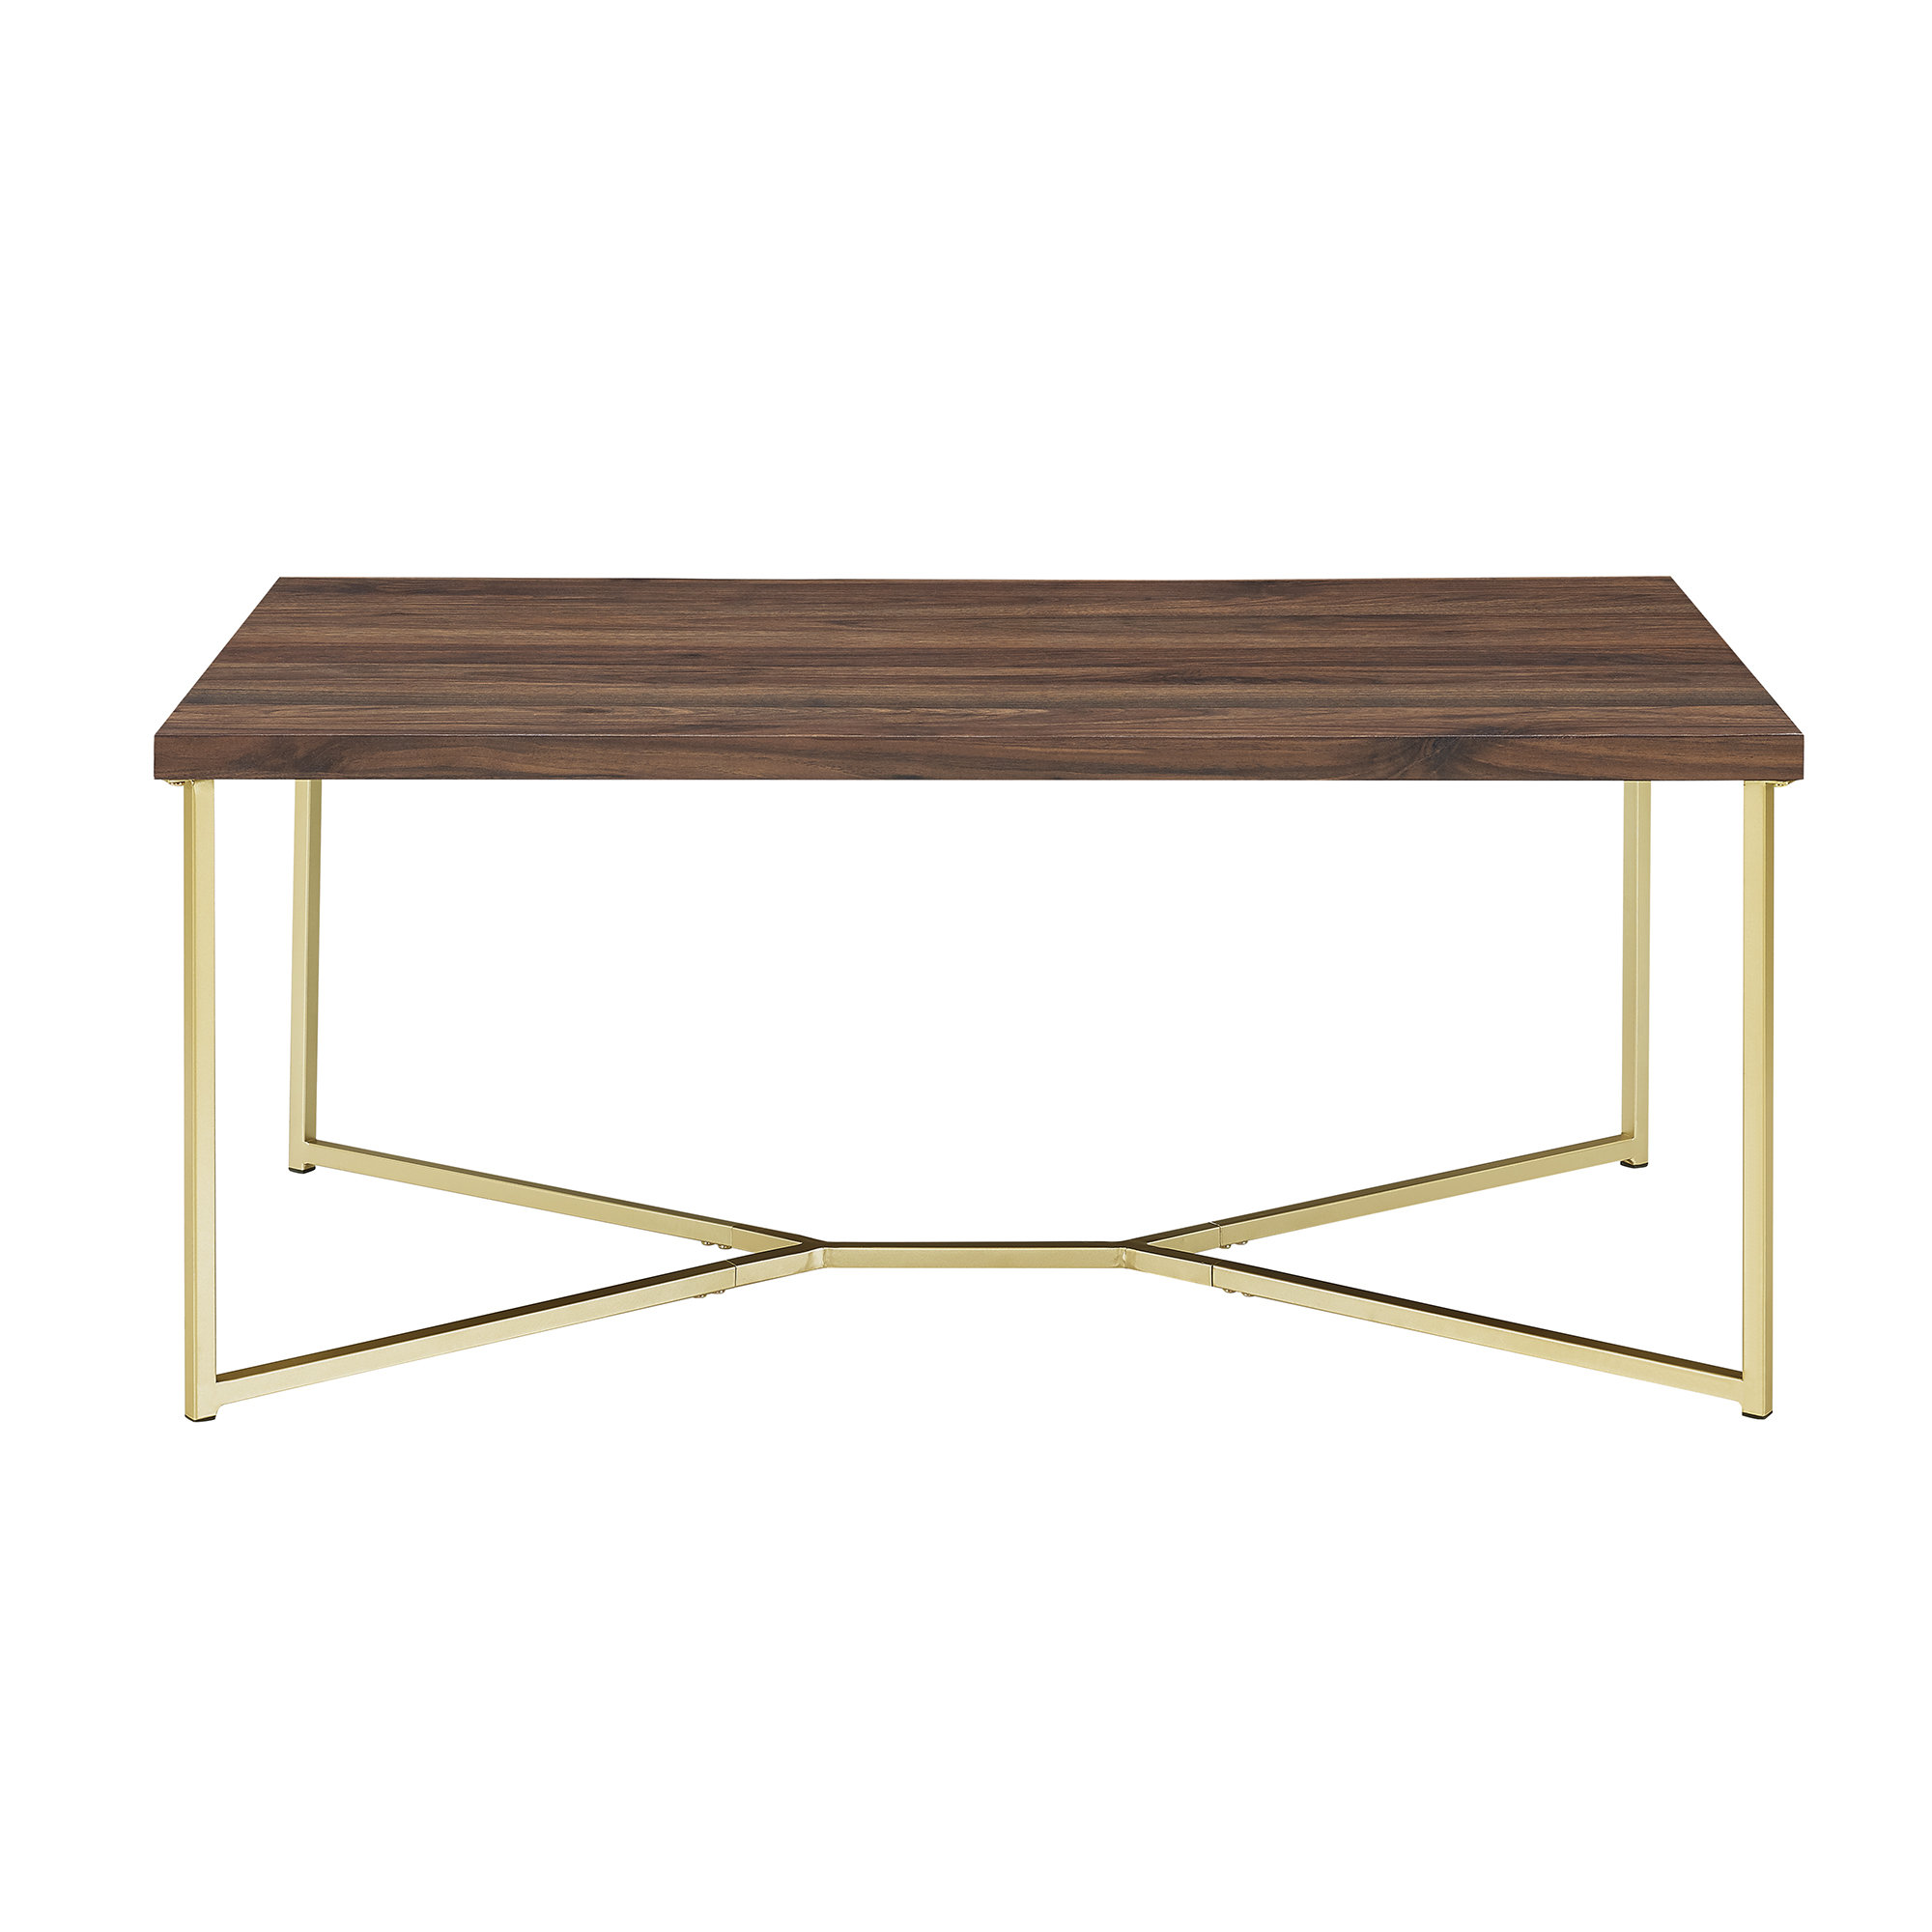 orren ellis default name light oak accent tables save glass mirror coffee table beach themed lighting lazy boy furniture reviews shabby chic dining round brass mirrored desk black